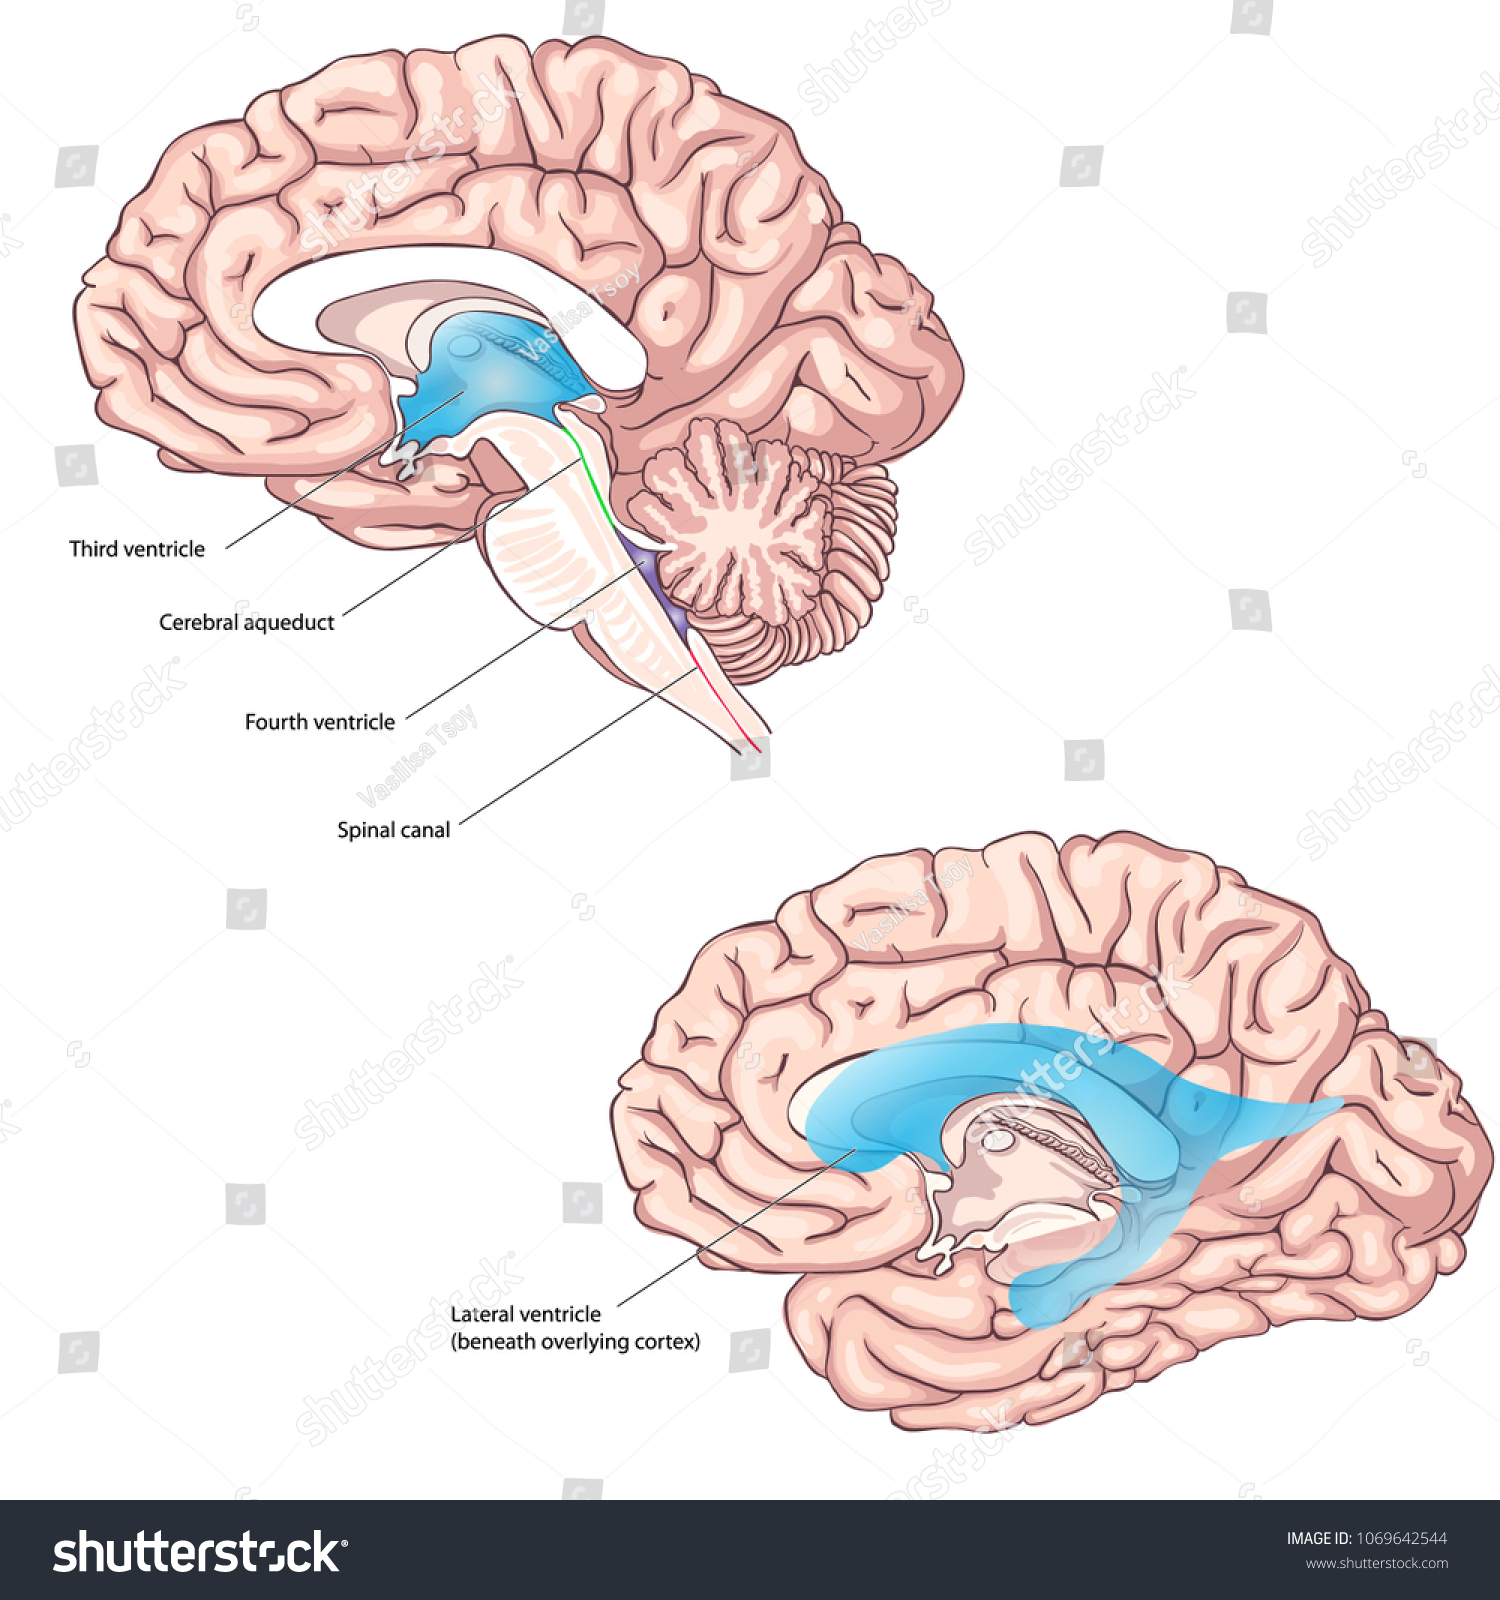 Magnificent Anatomy Of Ventricles Of Brain Mold - Anatomy Ideas ...